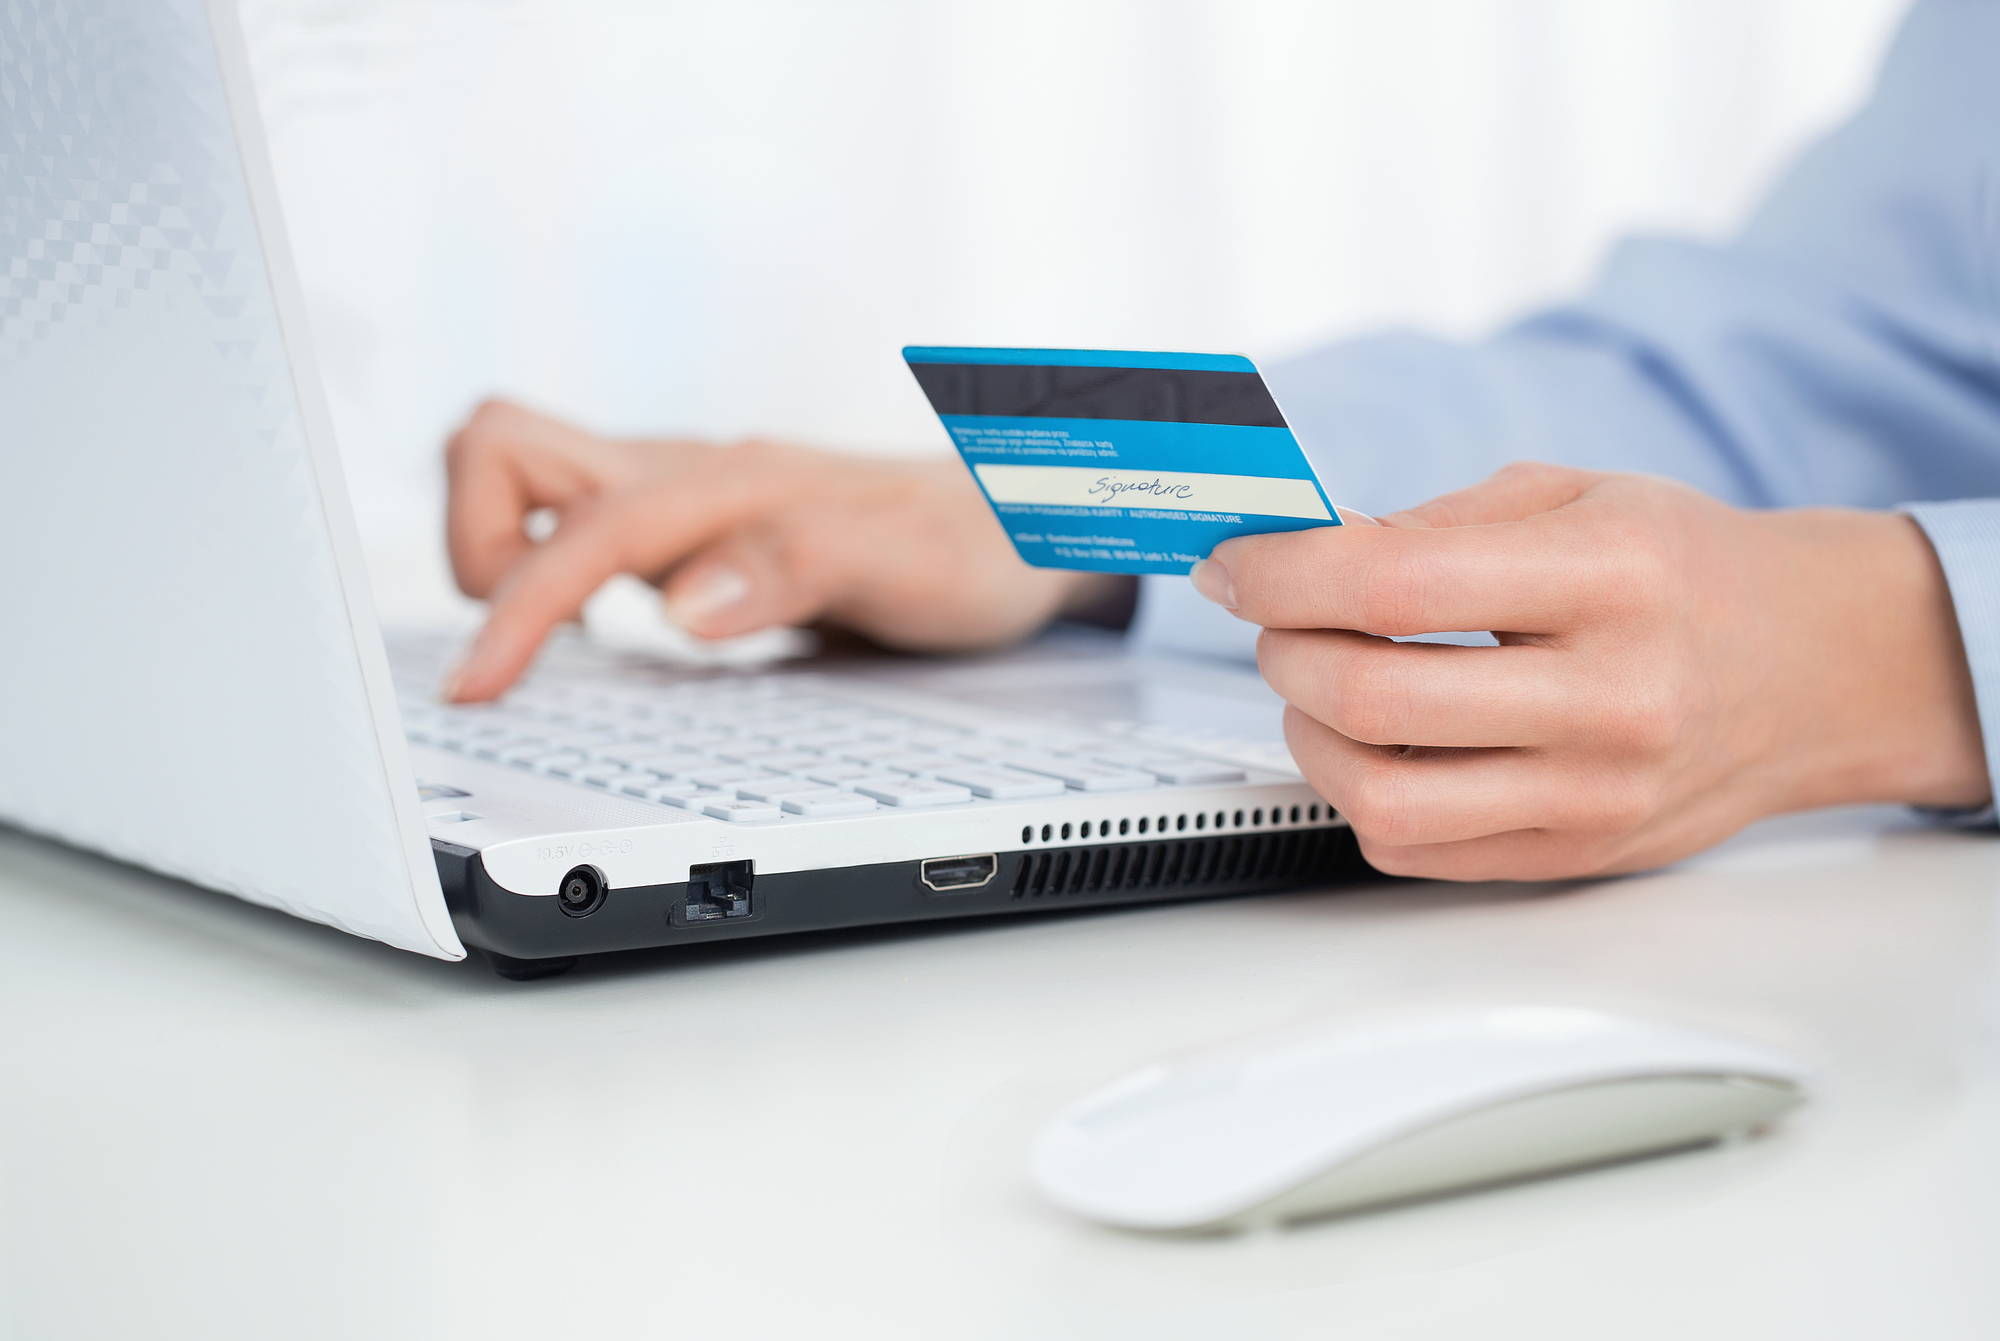 paying online with card